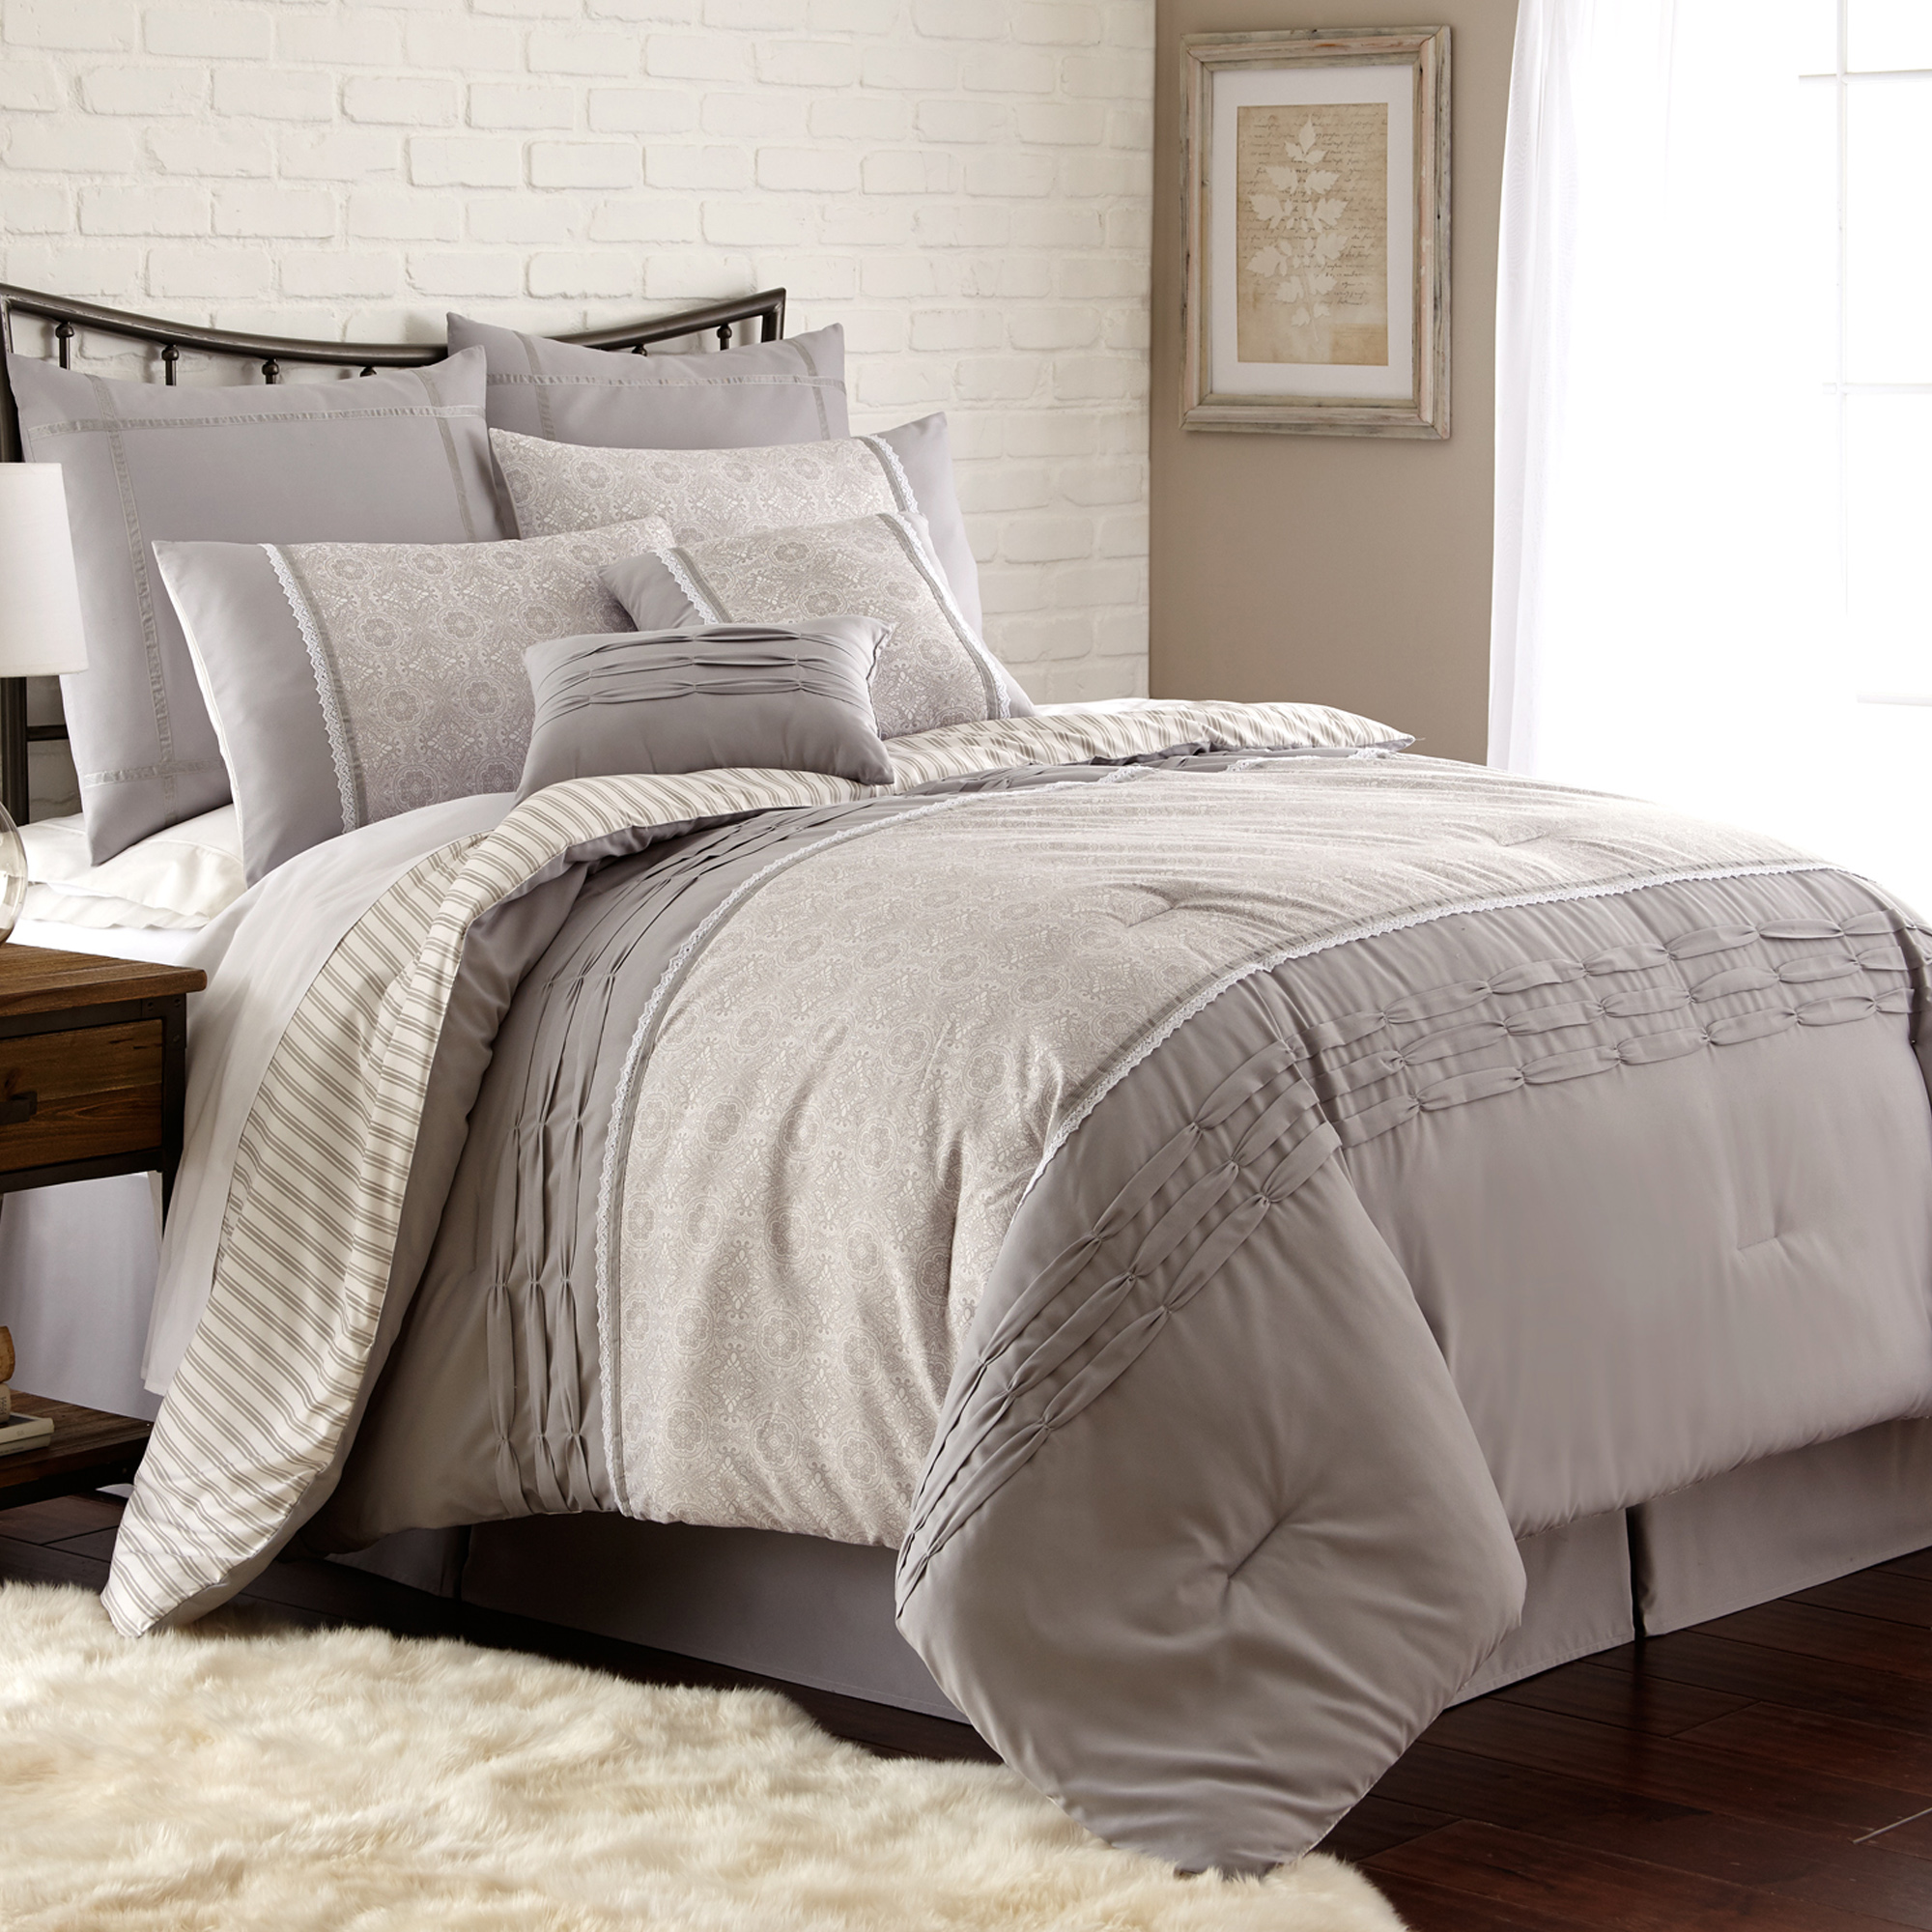 PCT Home Collection 8 pc Printed comforter set Camila King